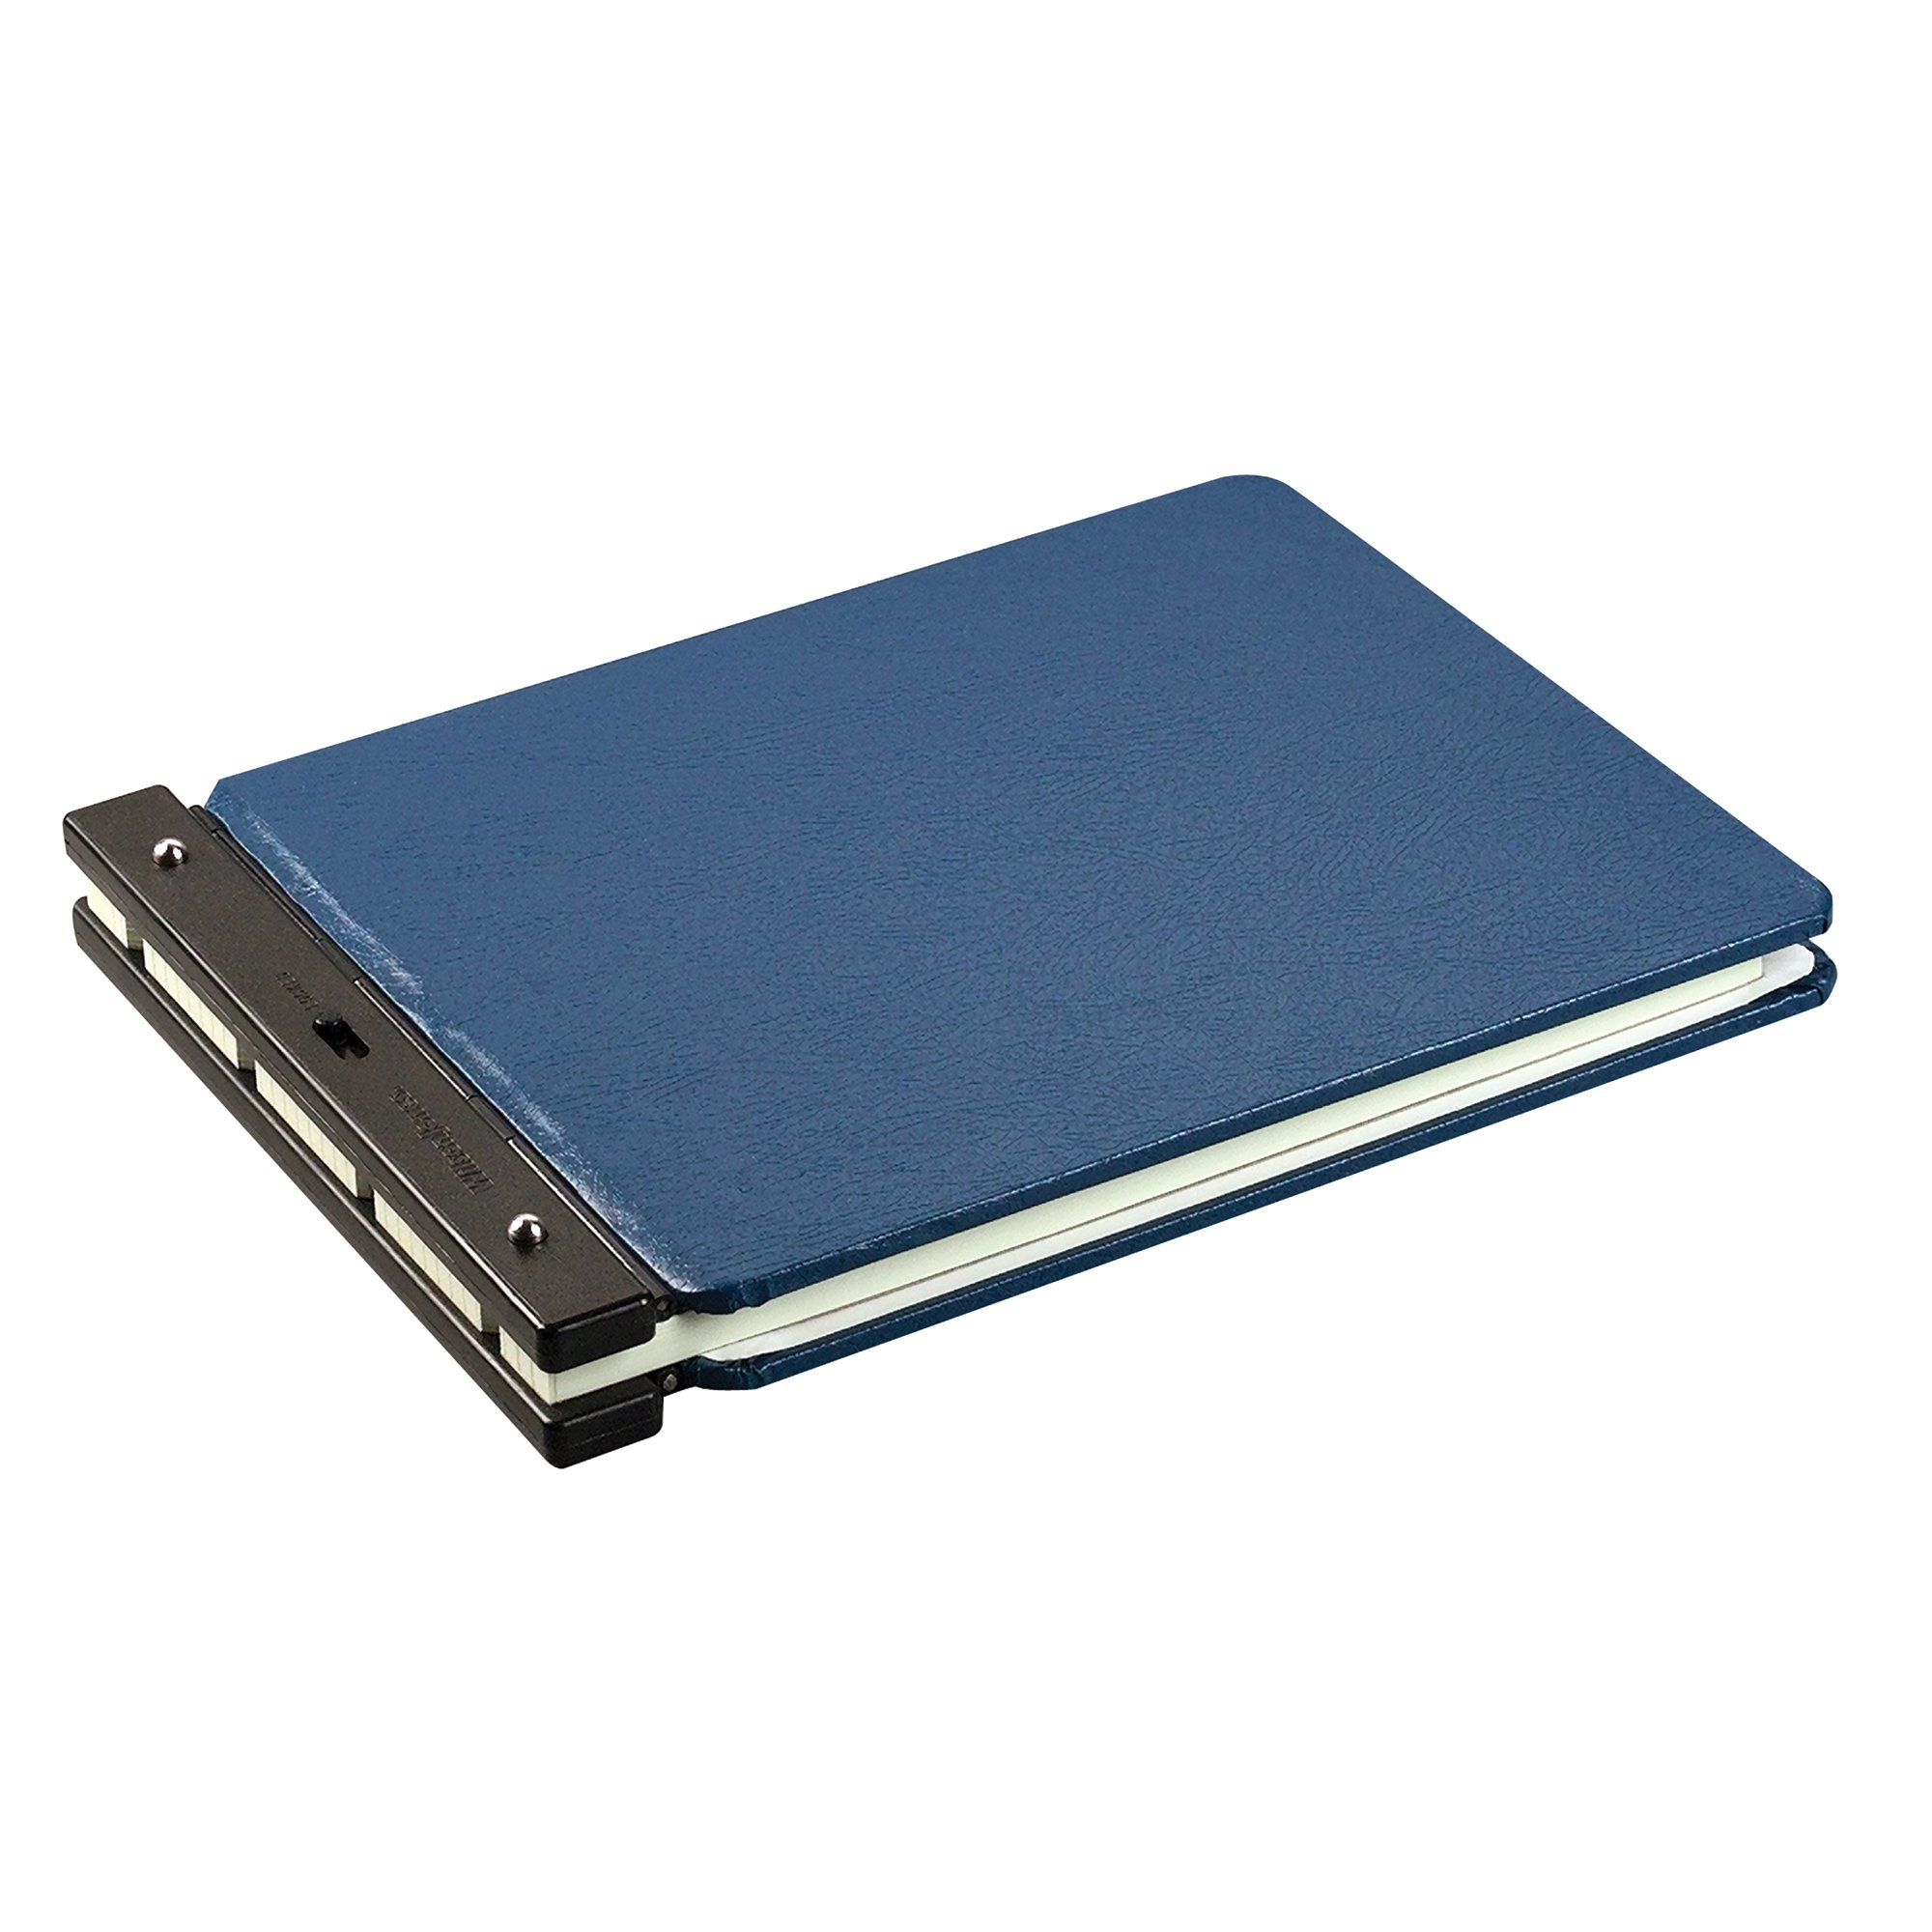 Wilson Jones Nomad Vinyl-Guarded Binder, 9 1/2 x 11 7/8 Inches, 5/16 Inch Post Diameter, Light Blue, (W226-40NA) by Wilson Jones